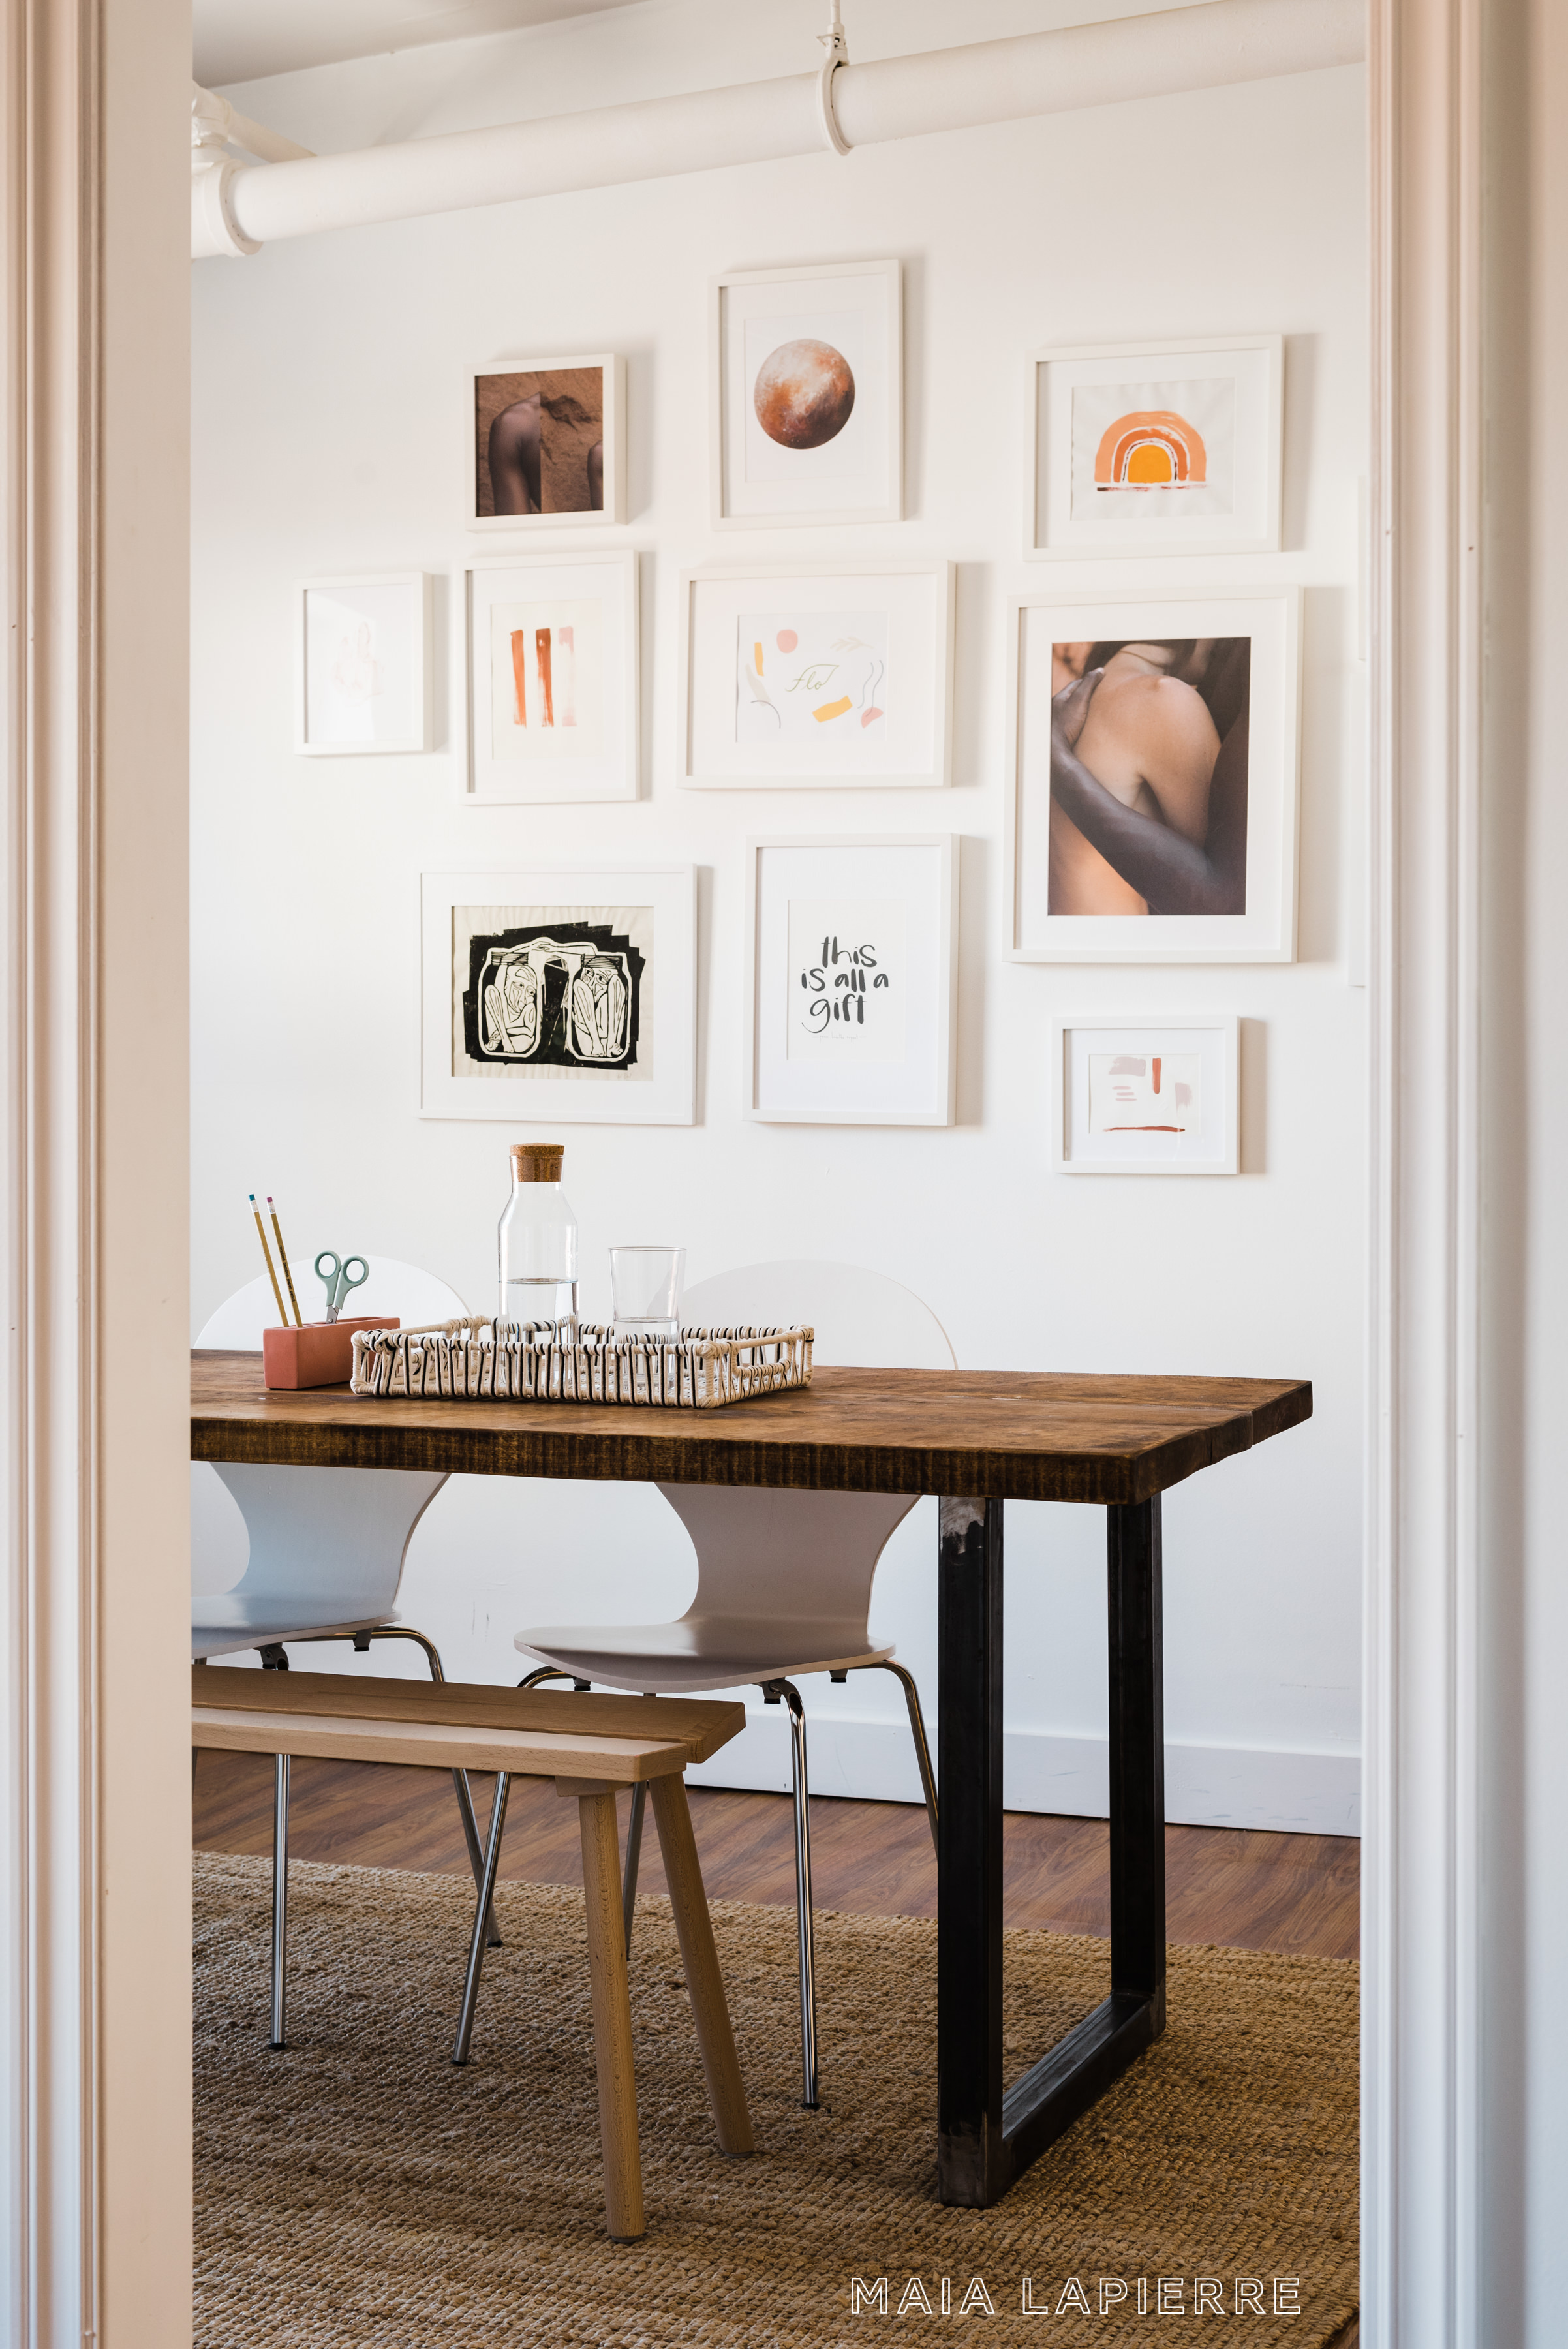 Maia LaPierre Interiors - Flo Meditation Studio Office